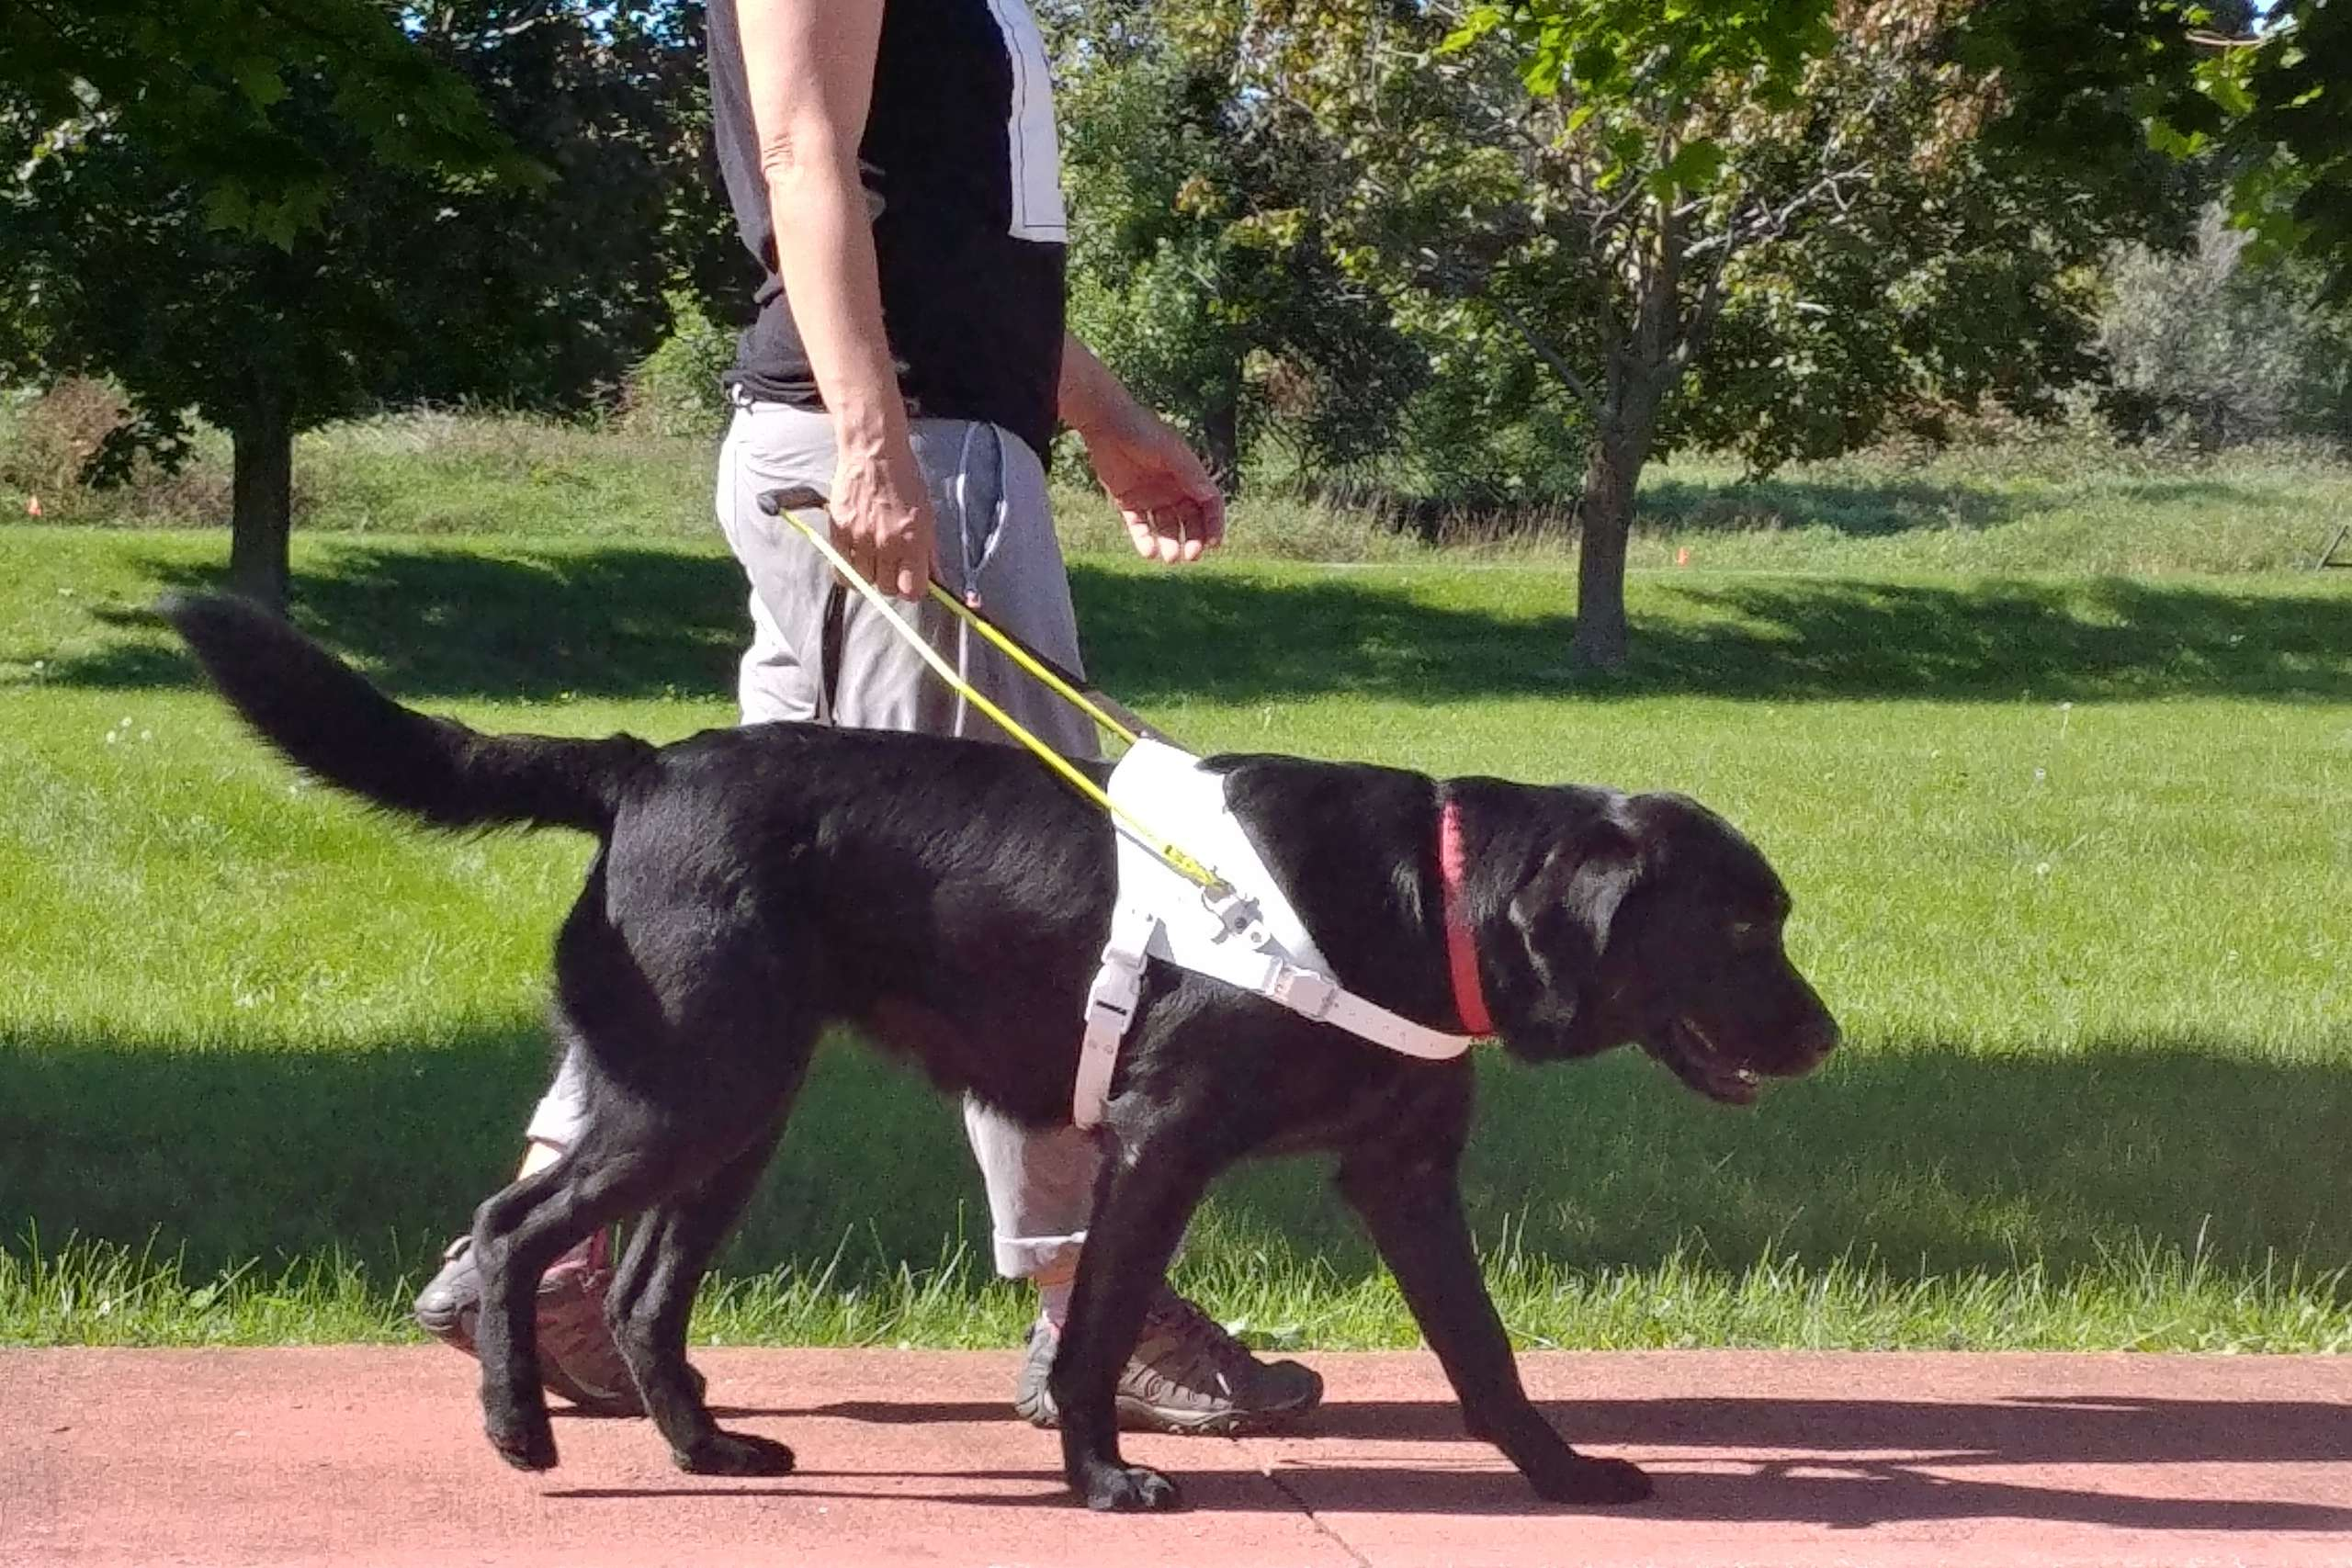 An image of a black lab wearing a white harness and yellow handle walking with a person